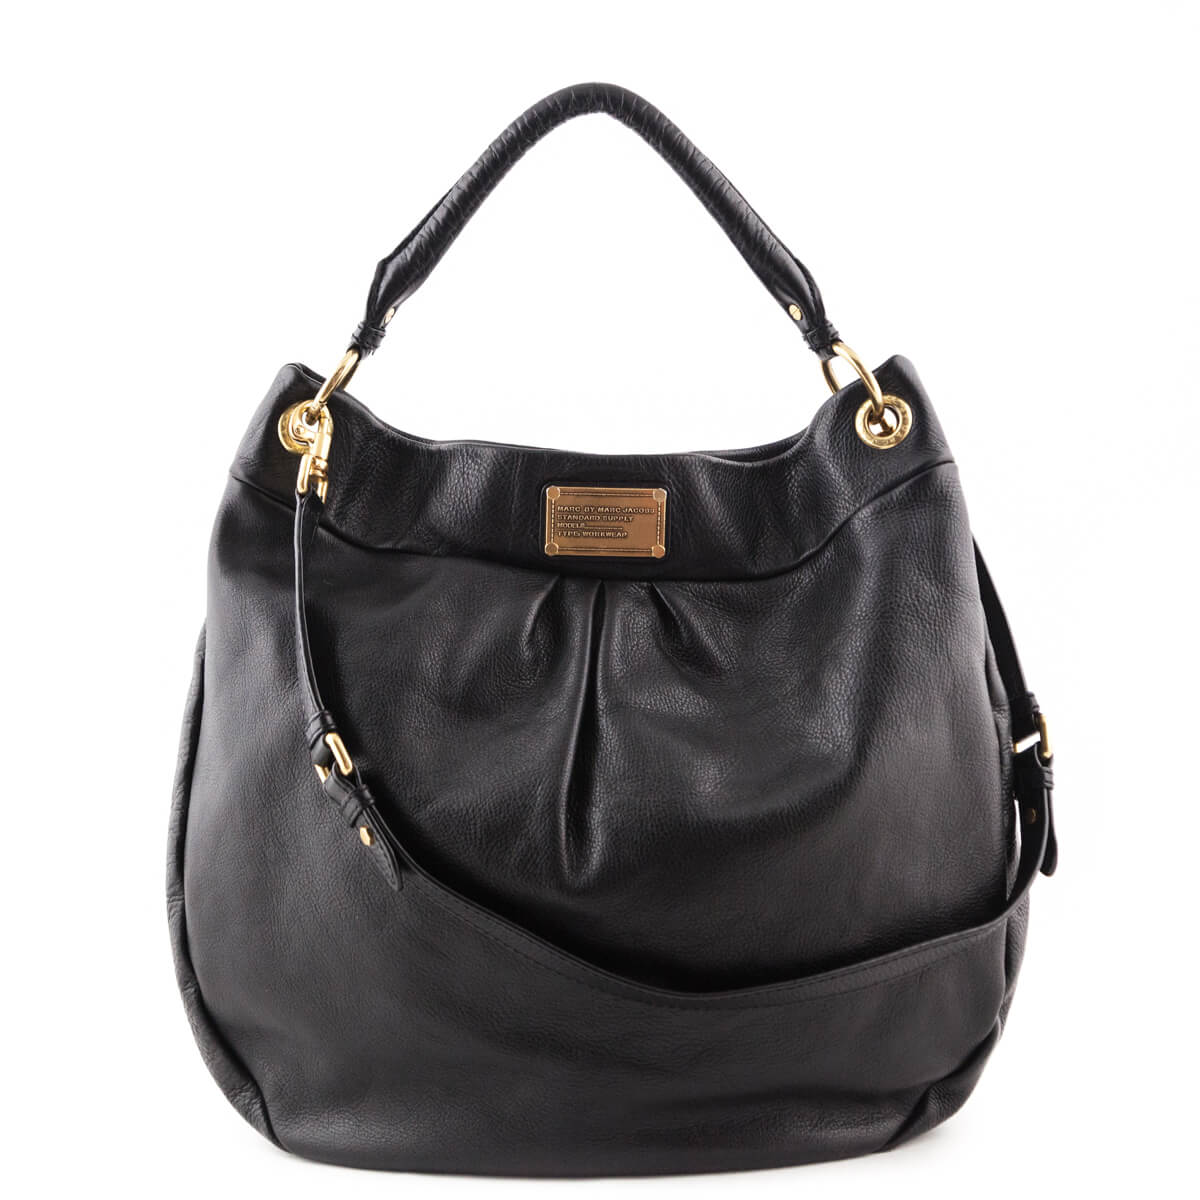 22883e1368f Marc by Marc Jacobs Black Classic Q Hillier Hobo - LOVE that BAG - Preowned  Authentic ...